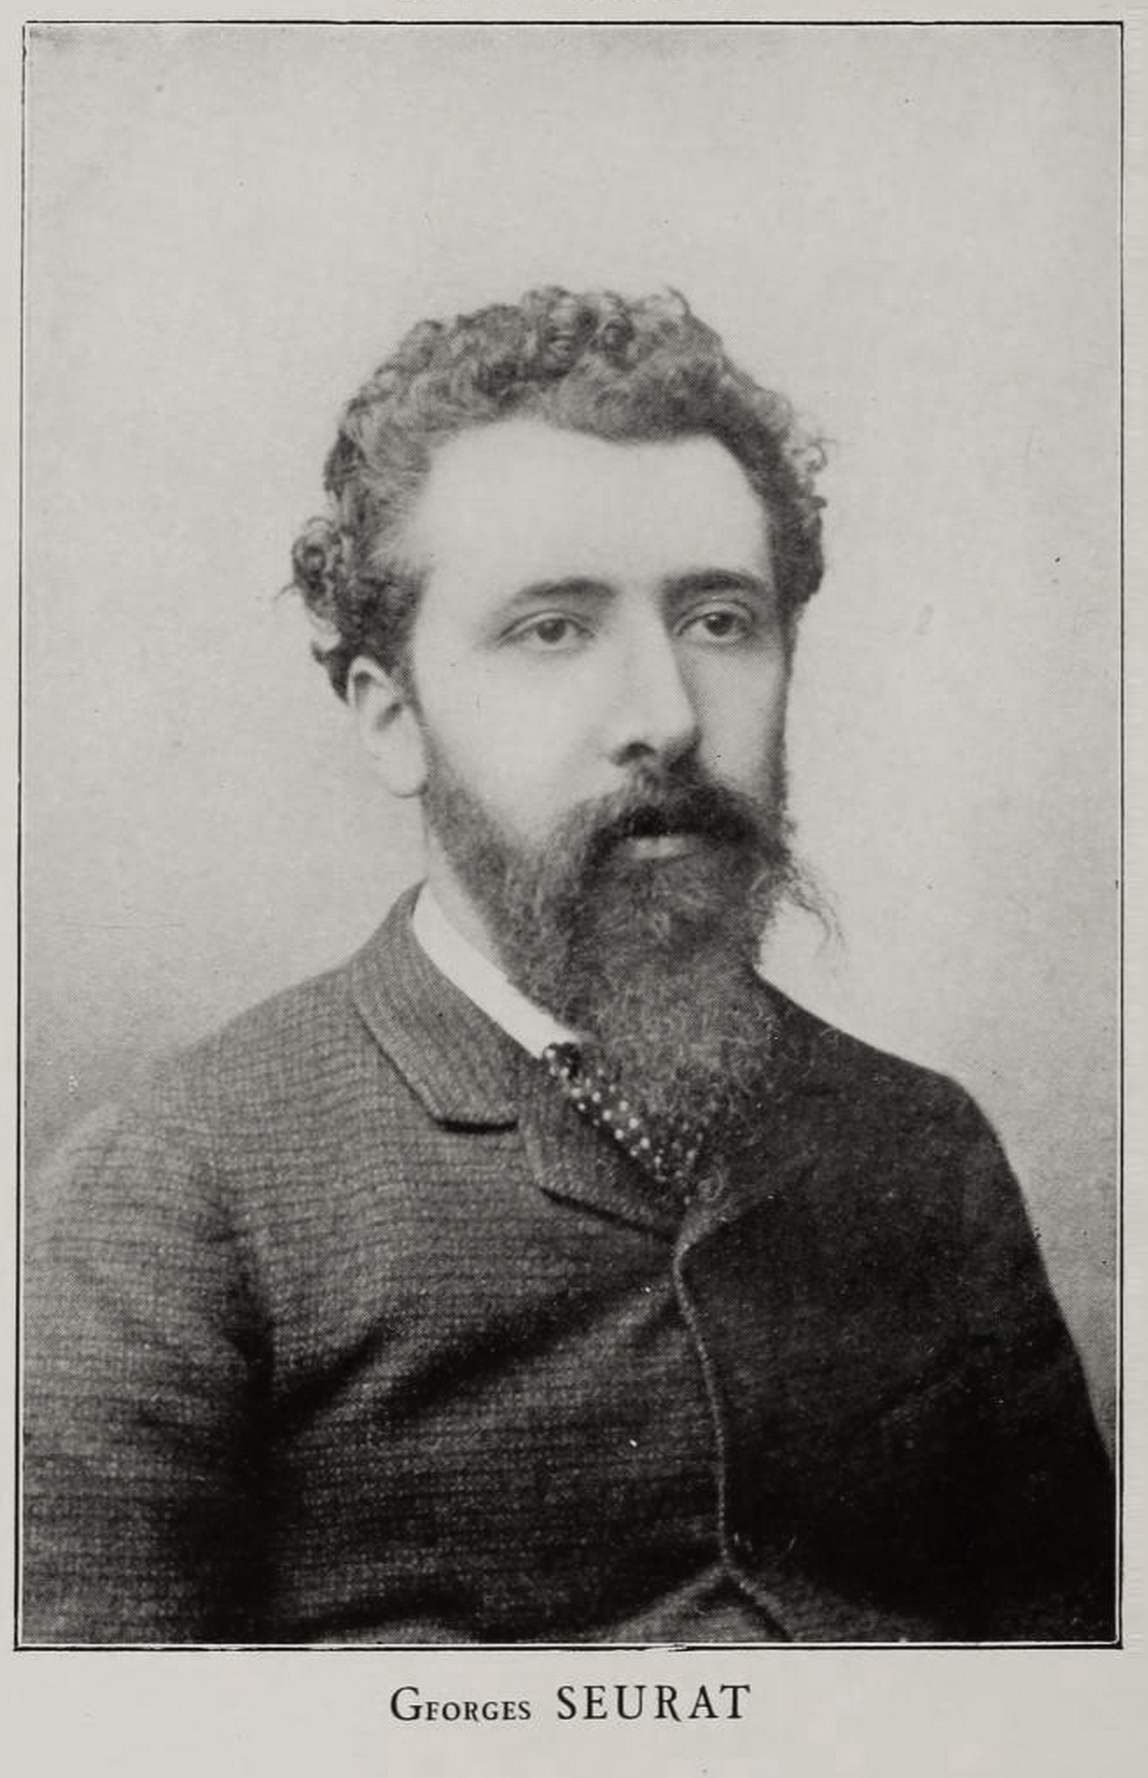 Georges Seurat (1859-1891), photo